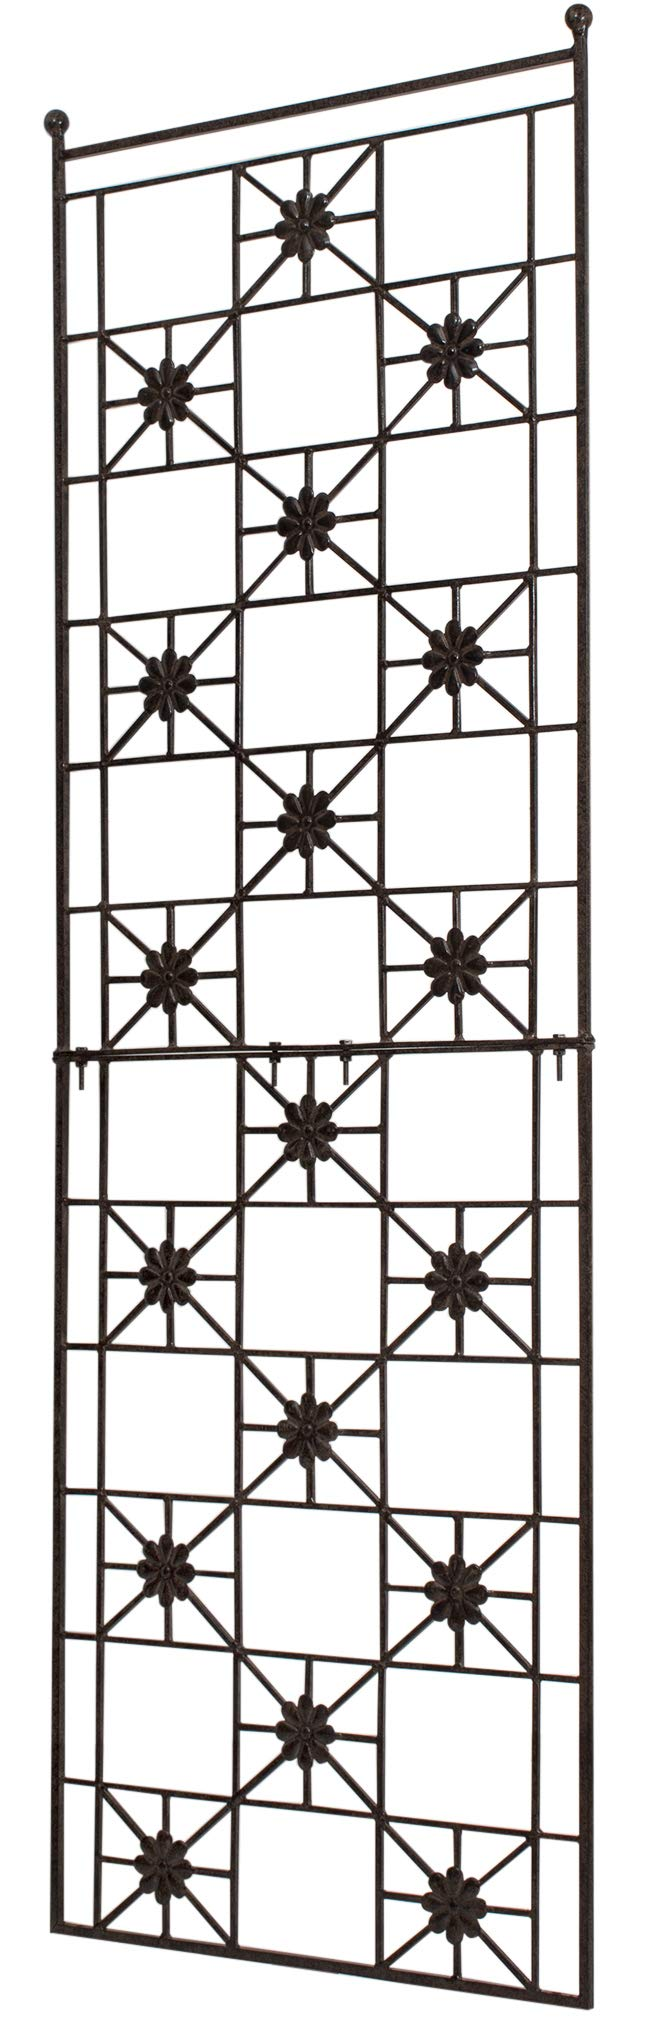 H Potter 5.5 Foot Tall Garden Flower Trellis Wrought Iron Heavy Scroll Metal Decoration Lawn, Patio & Wall Decor Screen for Rose, Clematis, Ivy Patio Deck Wall Art by H Potter (Image #4)